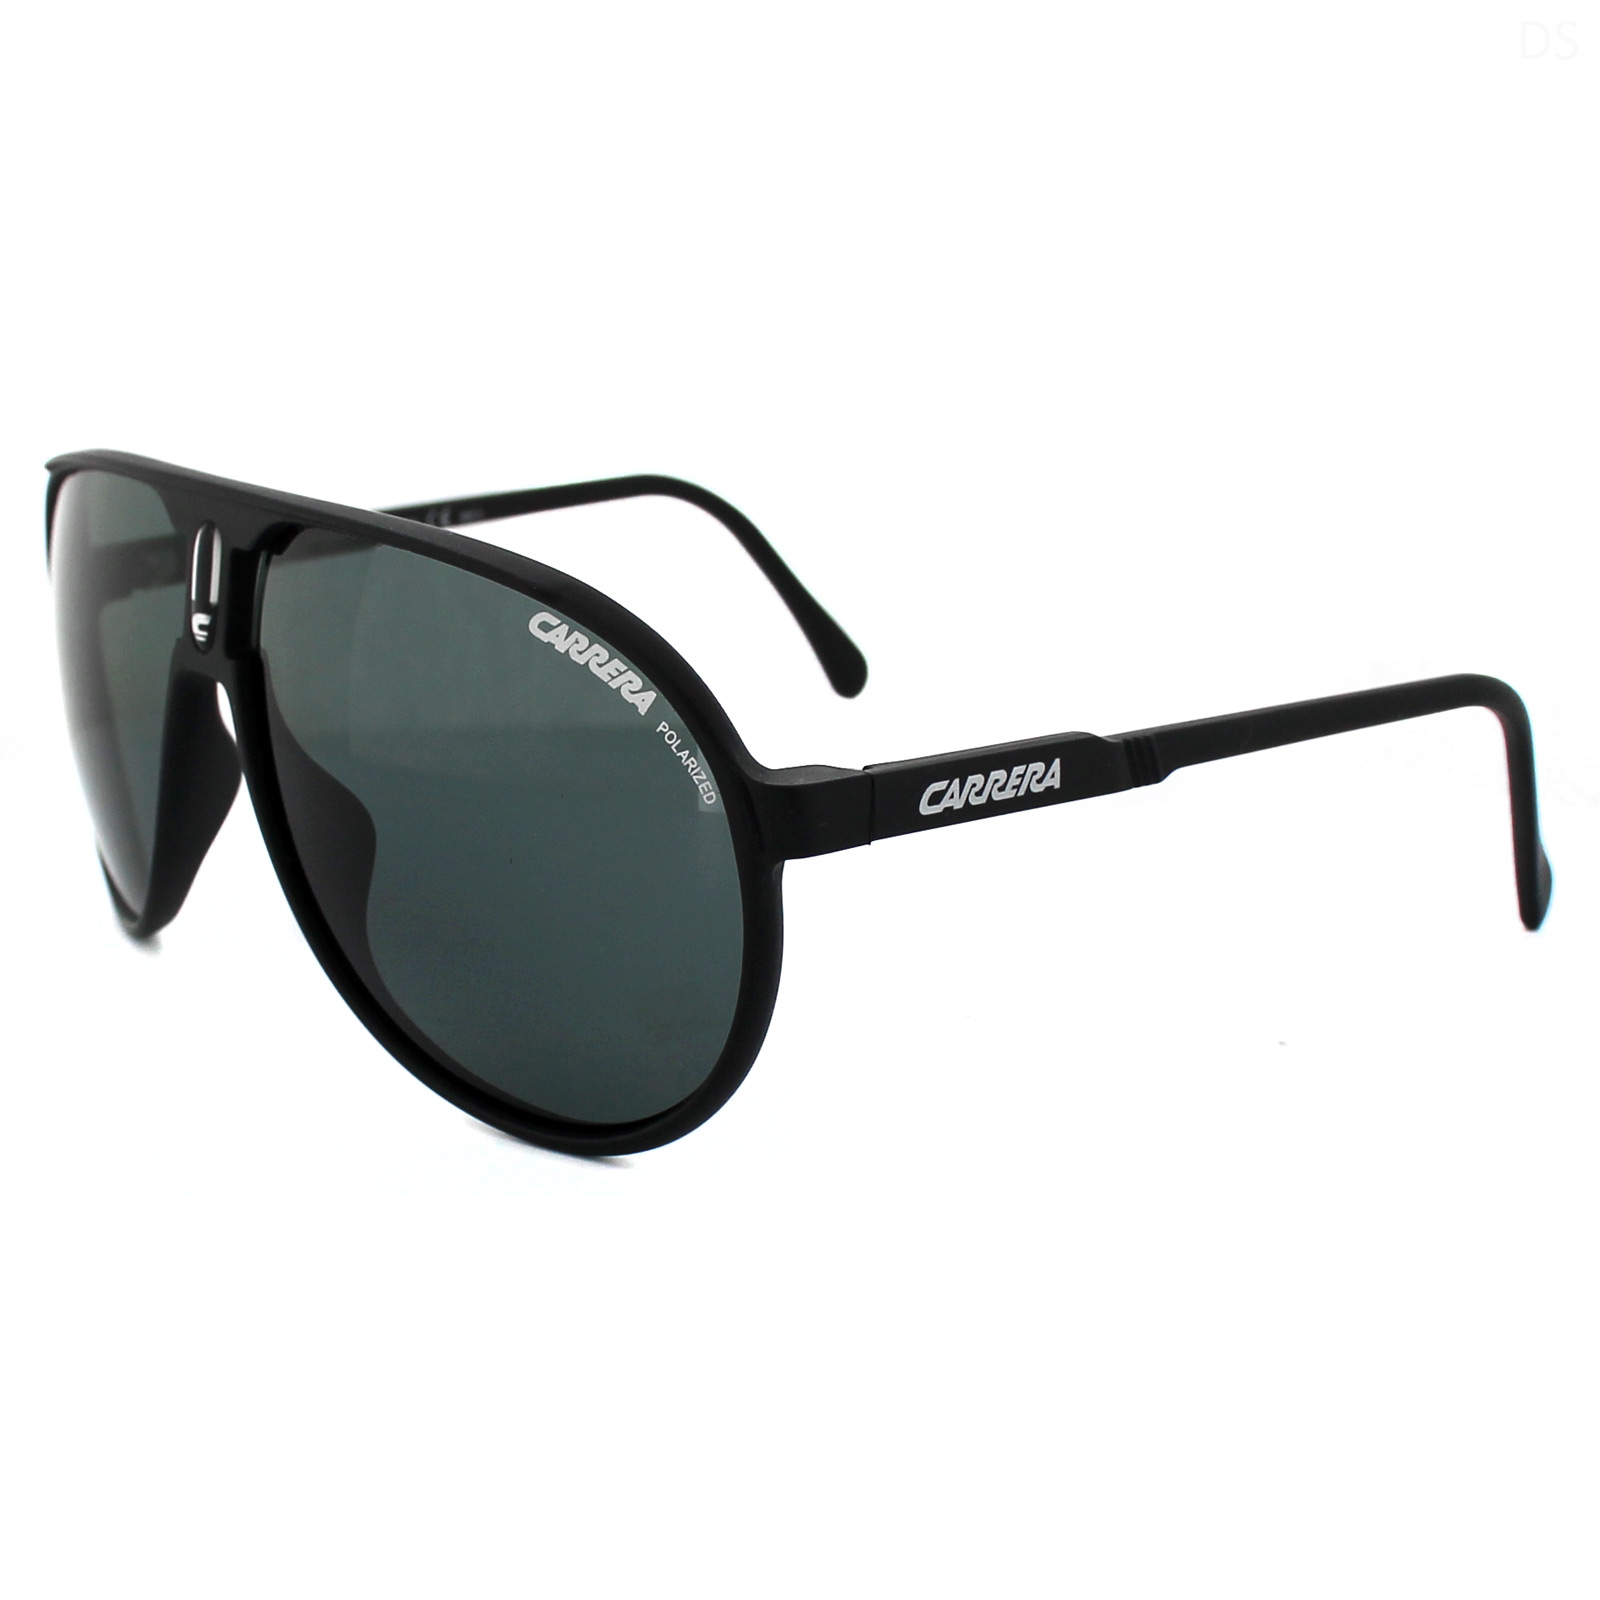 Carrera Sunglasses Champion DL5 Y2 Matt Black Grey ...